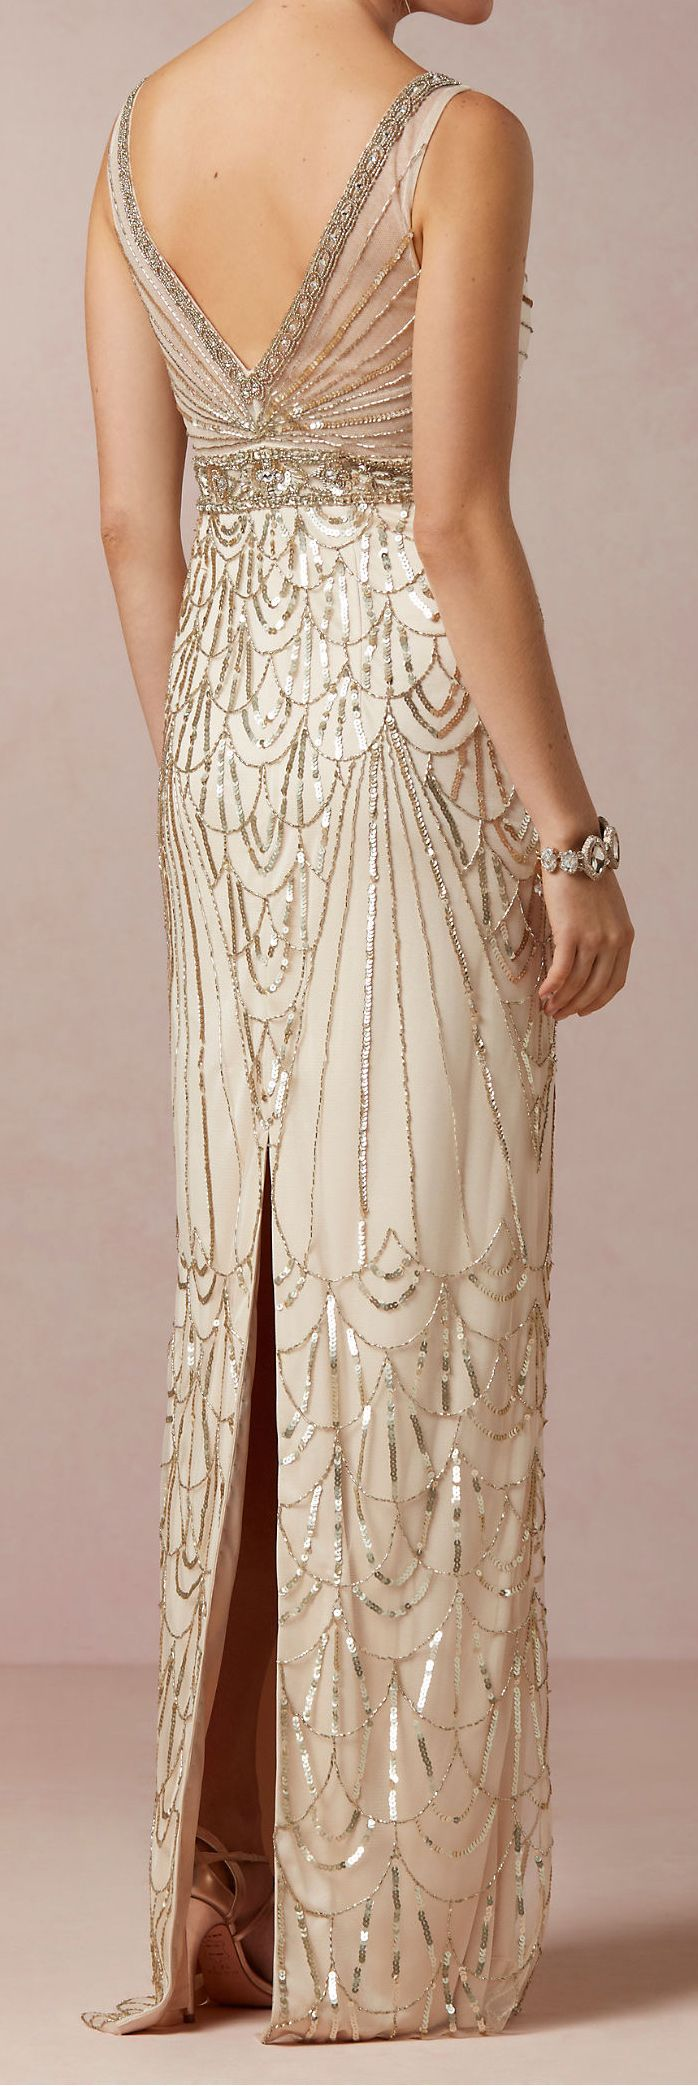 This gown is absolutely darling, the pattern all beaded, feminine with an touch of elegance, again following the Art Deco pattern, simple but stunning.